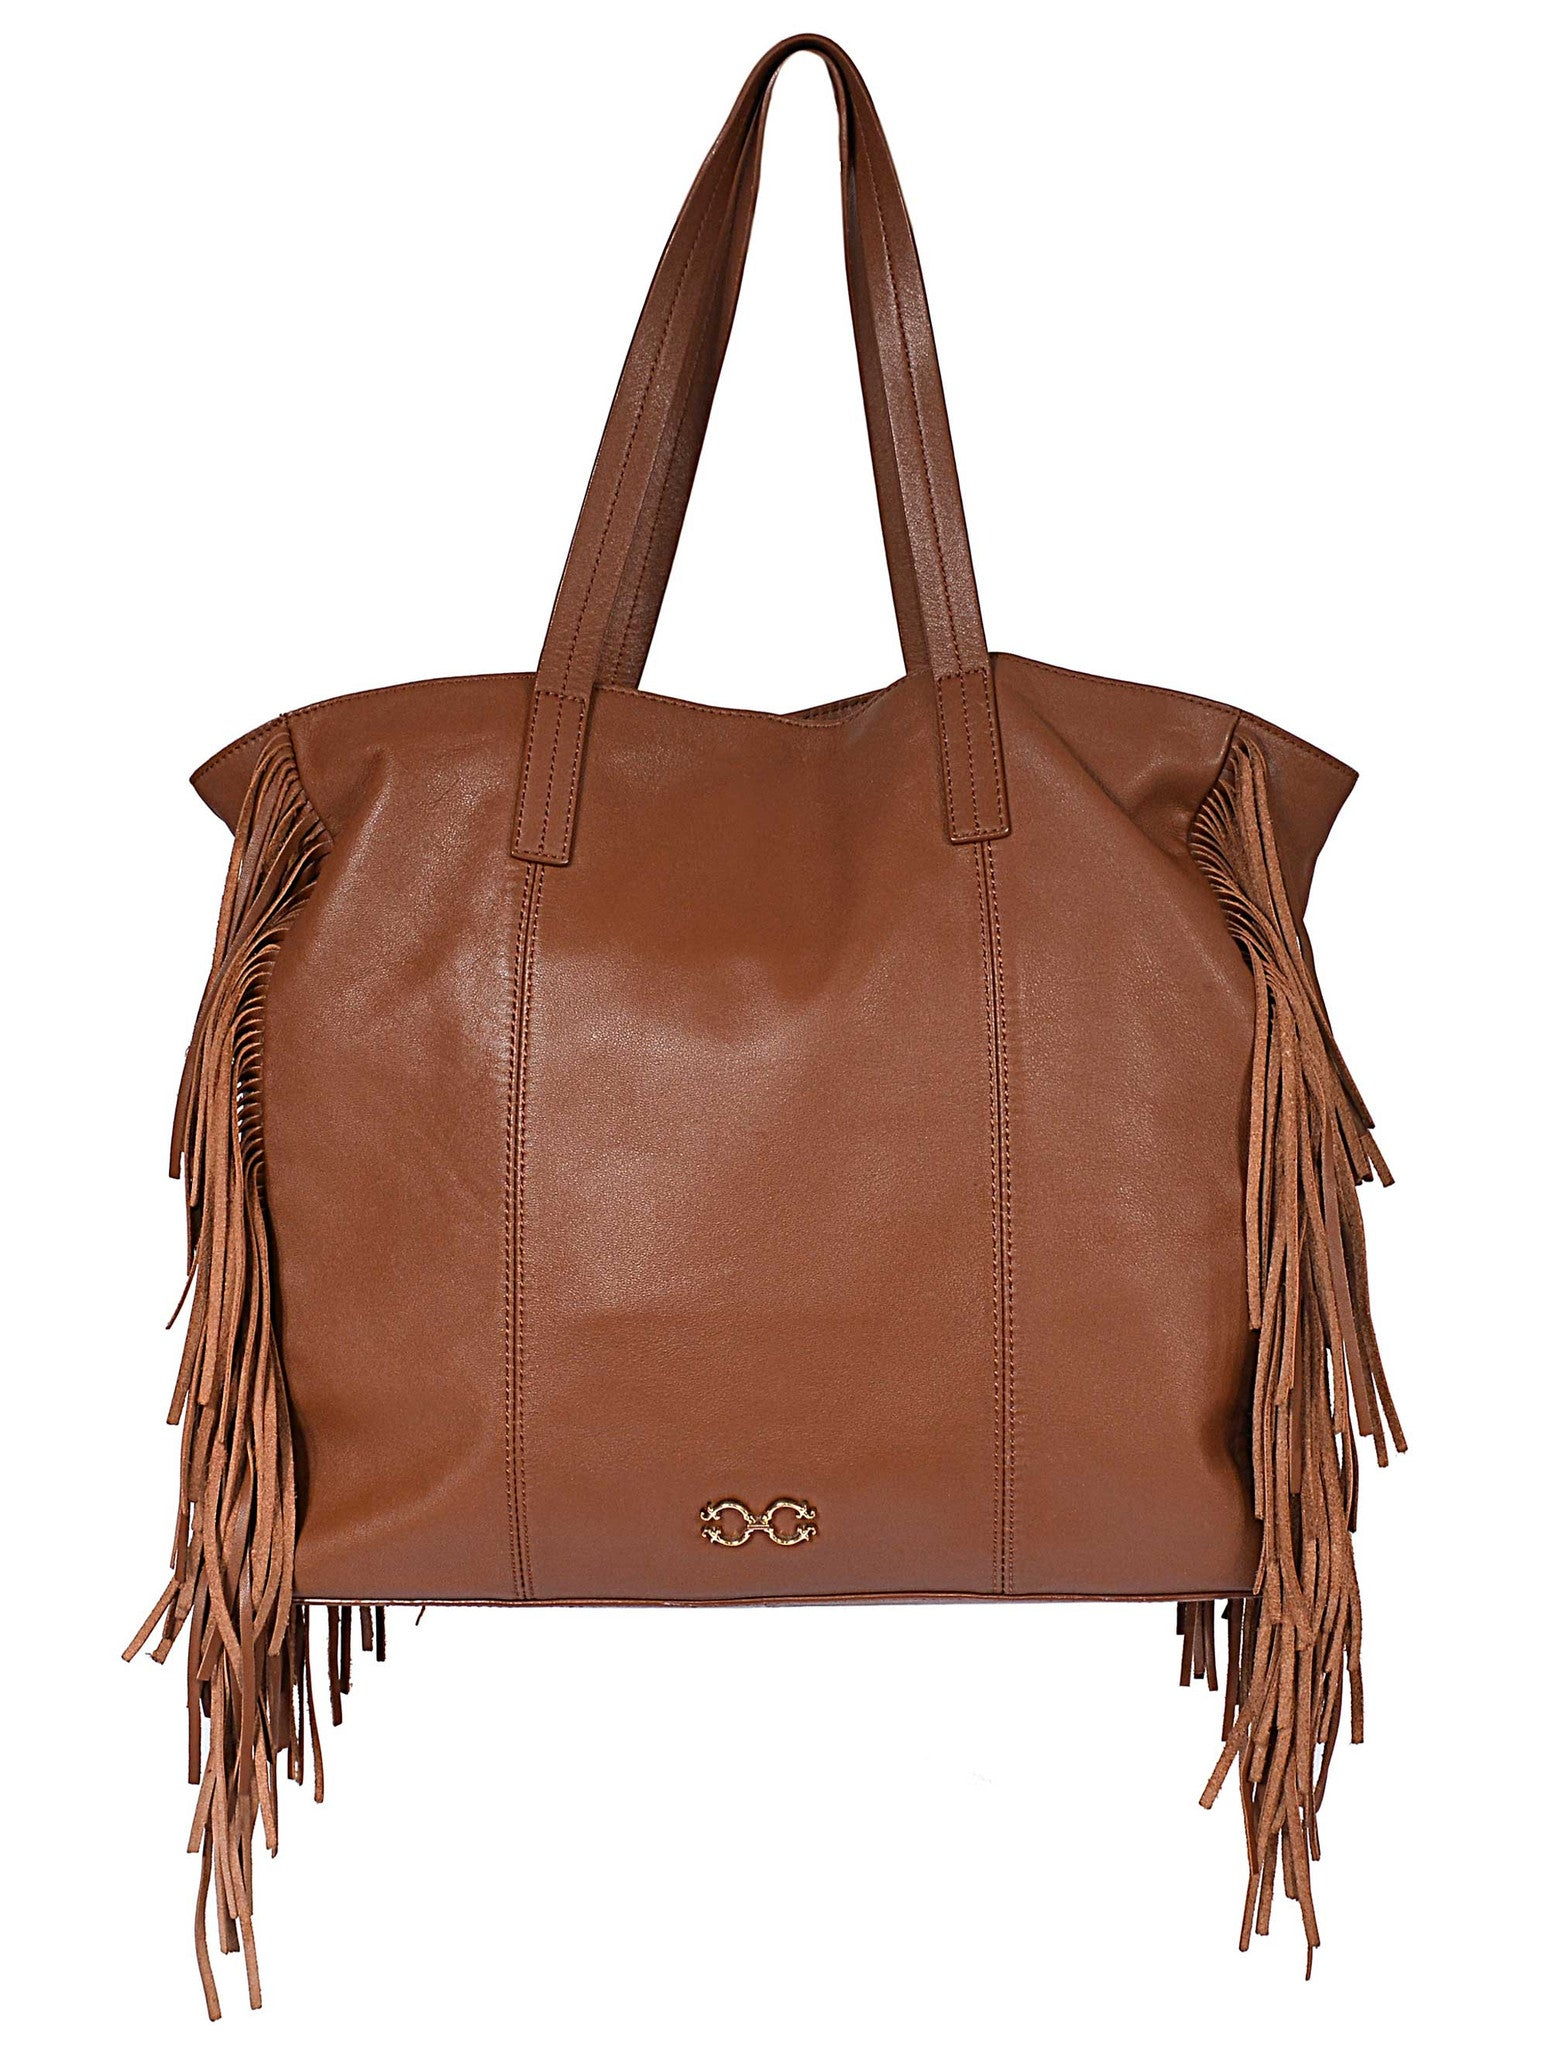 LARGE LEATHER SHOULDER BAG WITH TASSEL